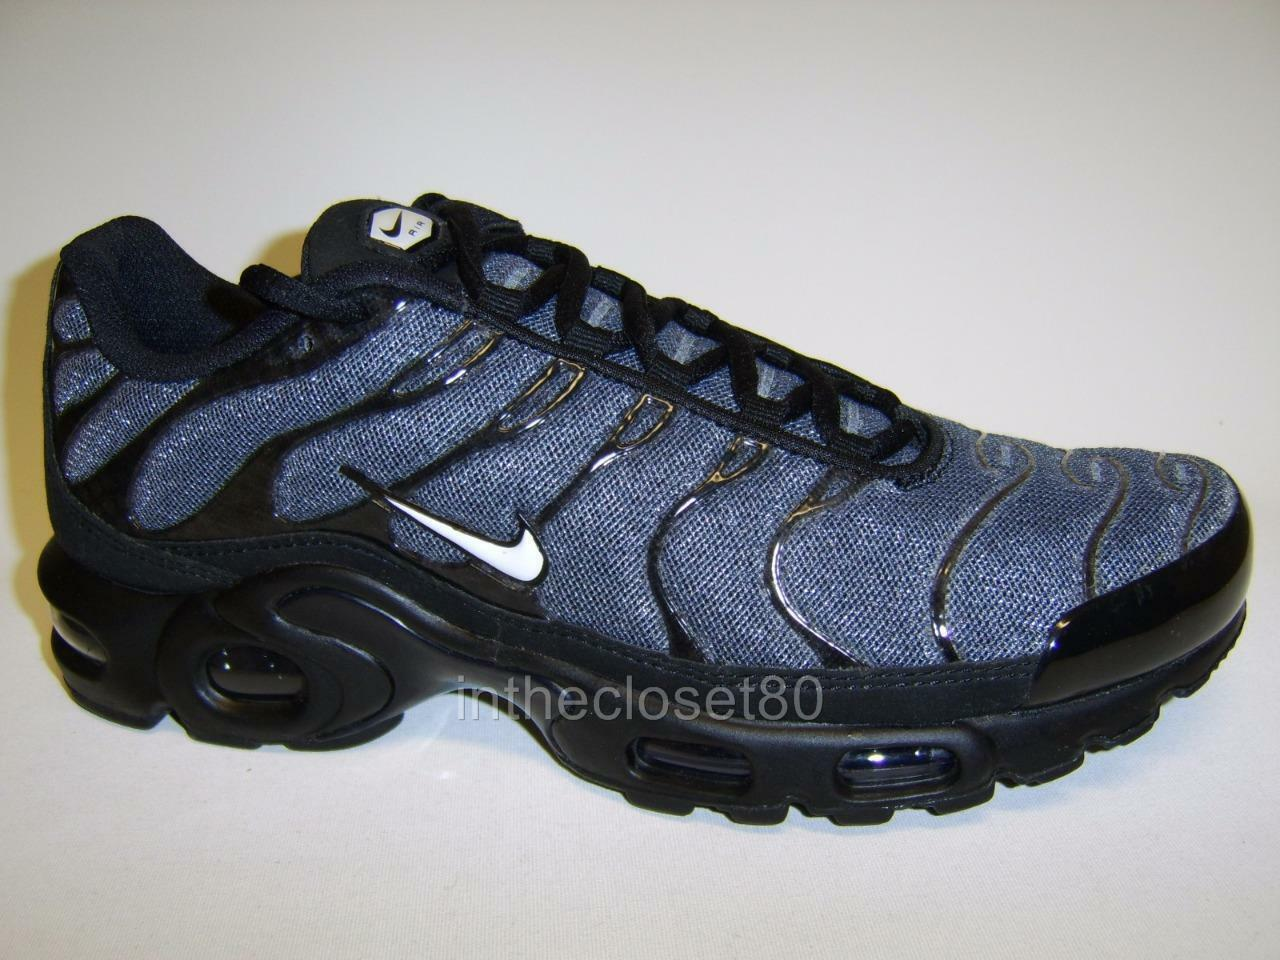 Nike Air Max Txt Plus Tn Tuned 1 Black White Black Mens Trainers 647315 019